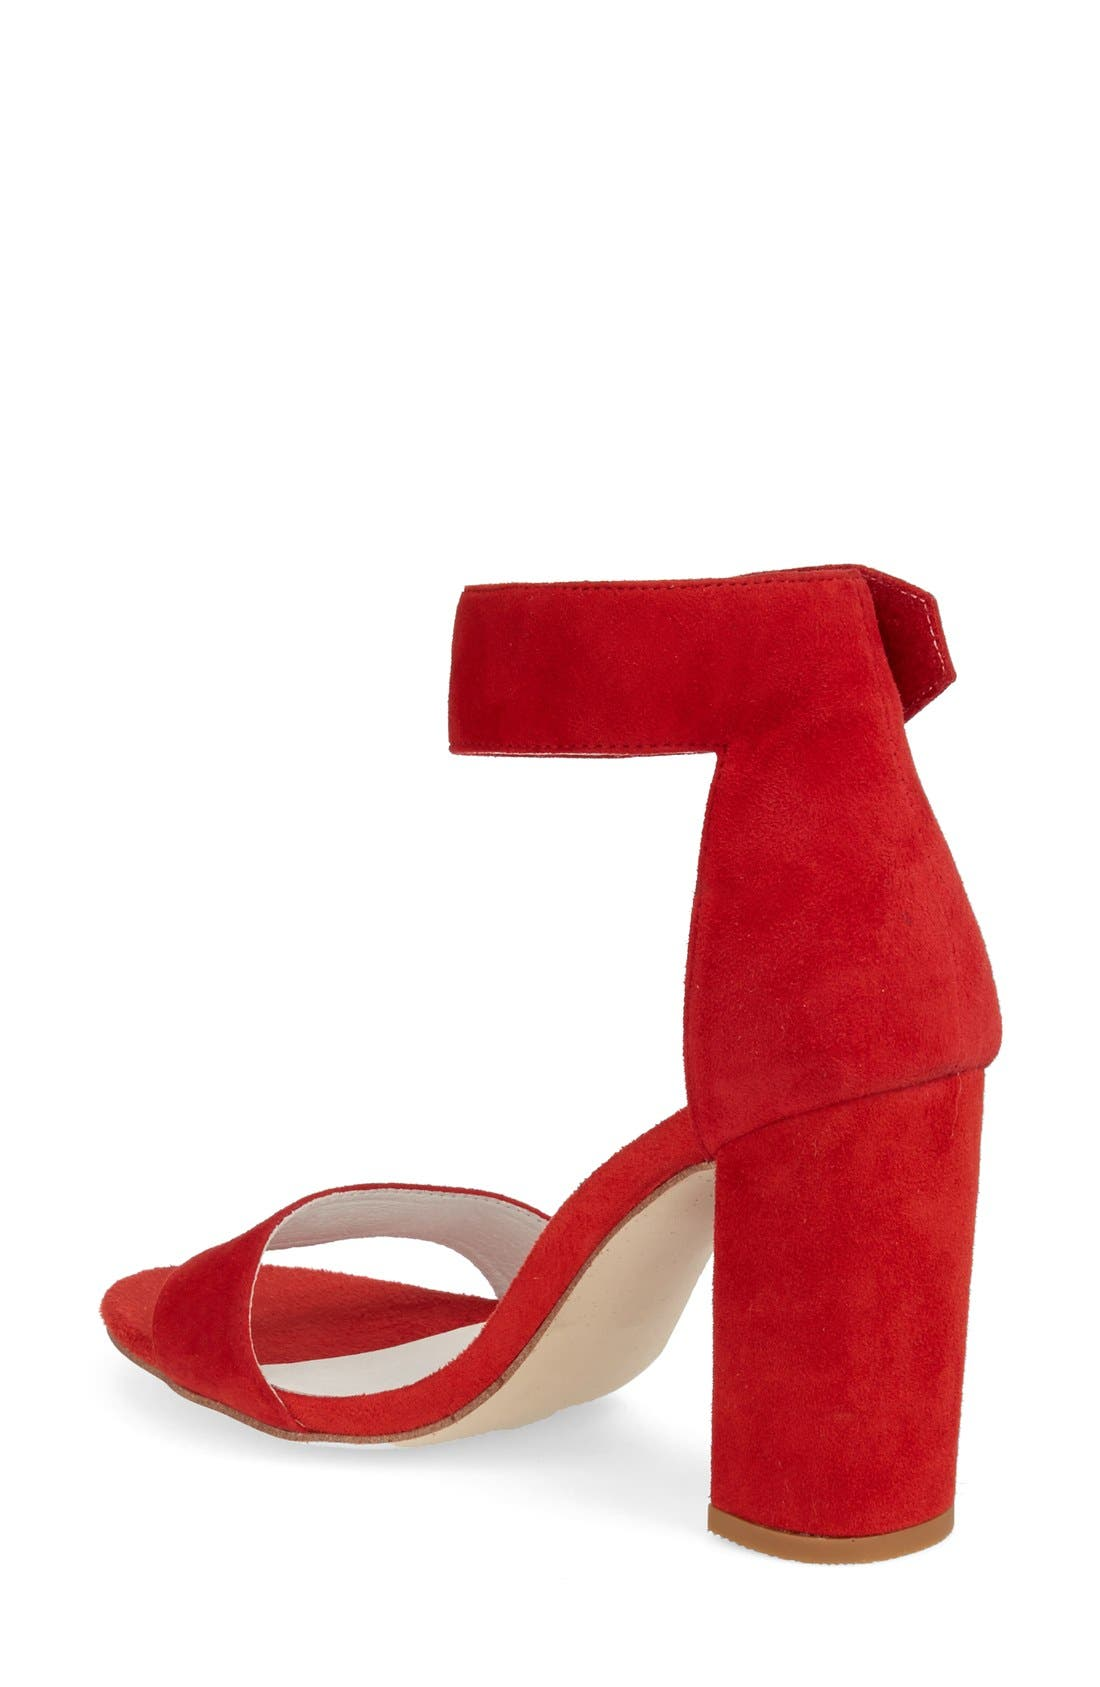 'Lindsay' Ankle Strap Sandal,                             Alternate thumbnail 59, color,